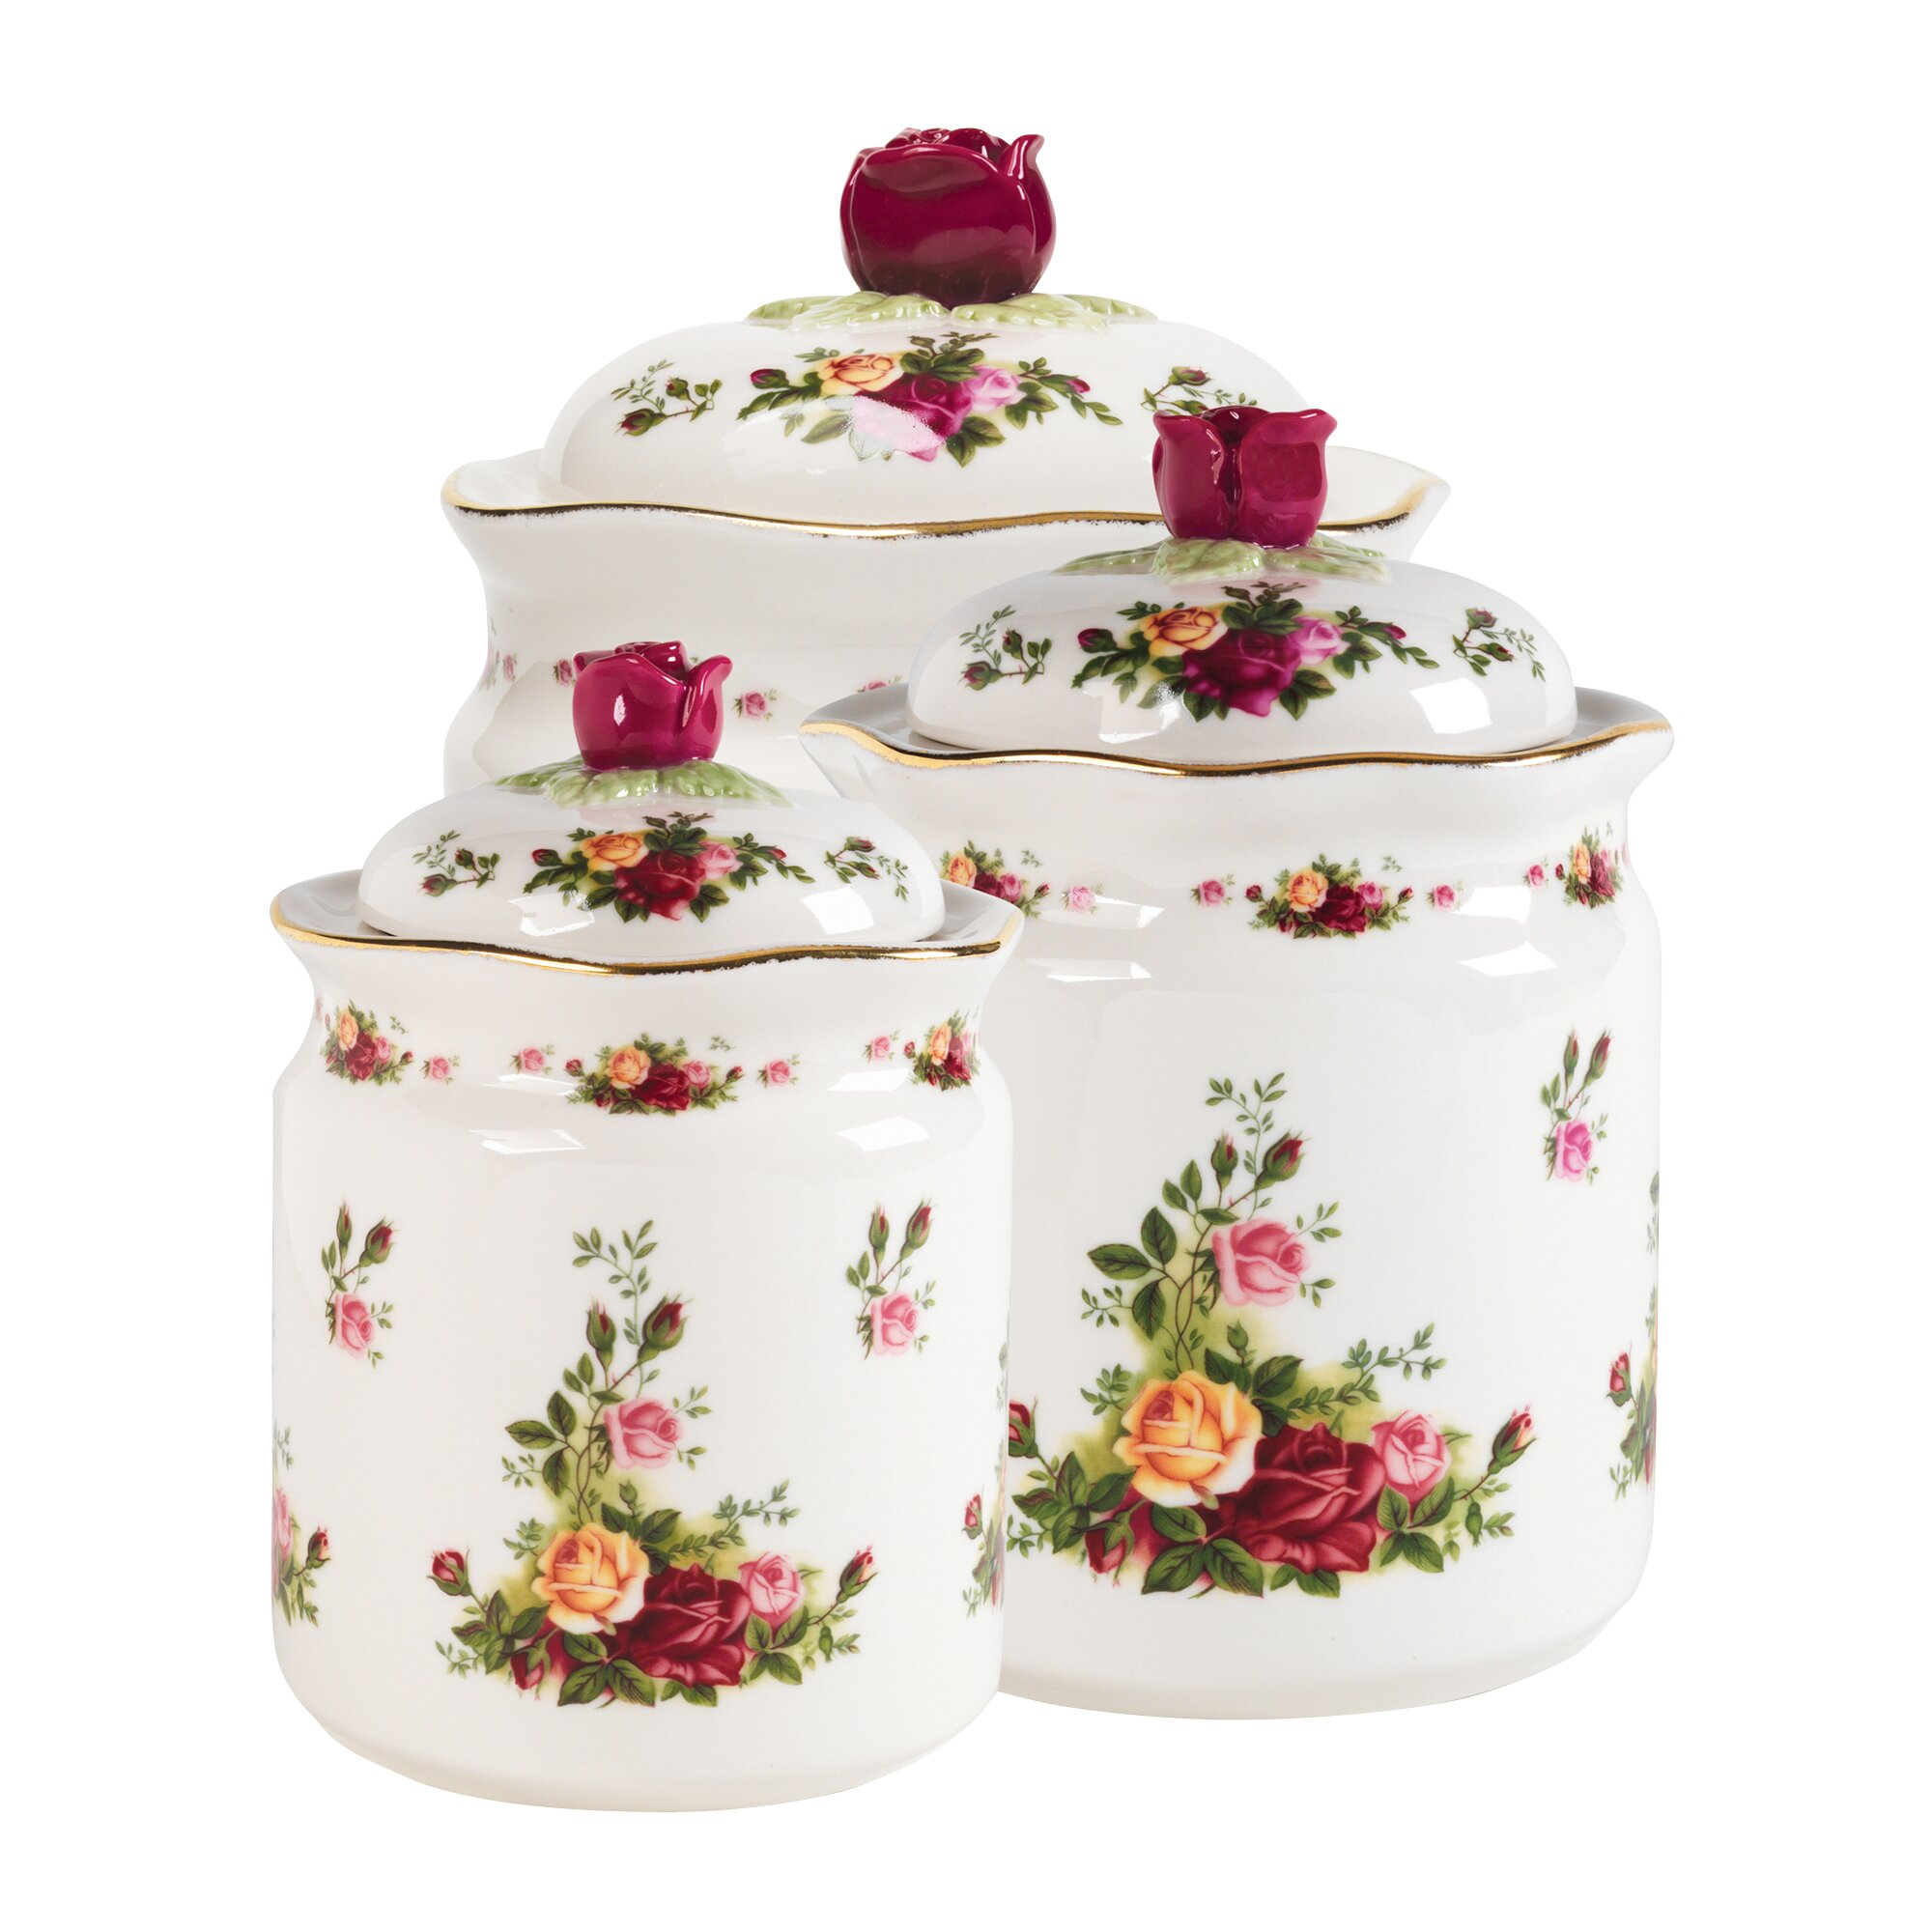 Country canister sets for kitchen - Royal Albert Old Country Roses 3 Piece Kitchen Canister Set